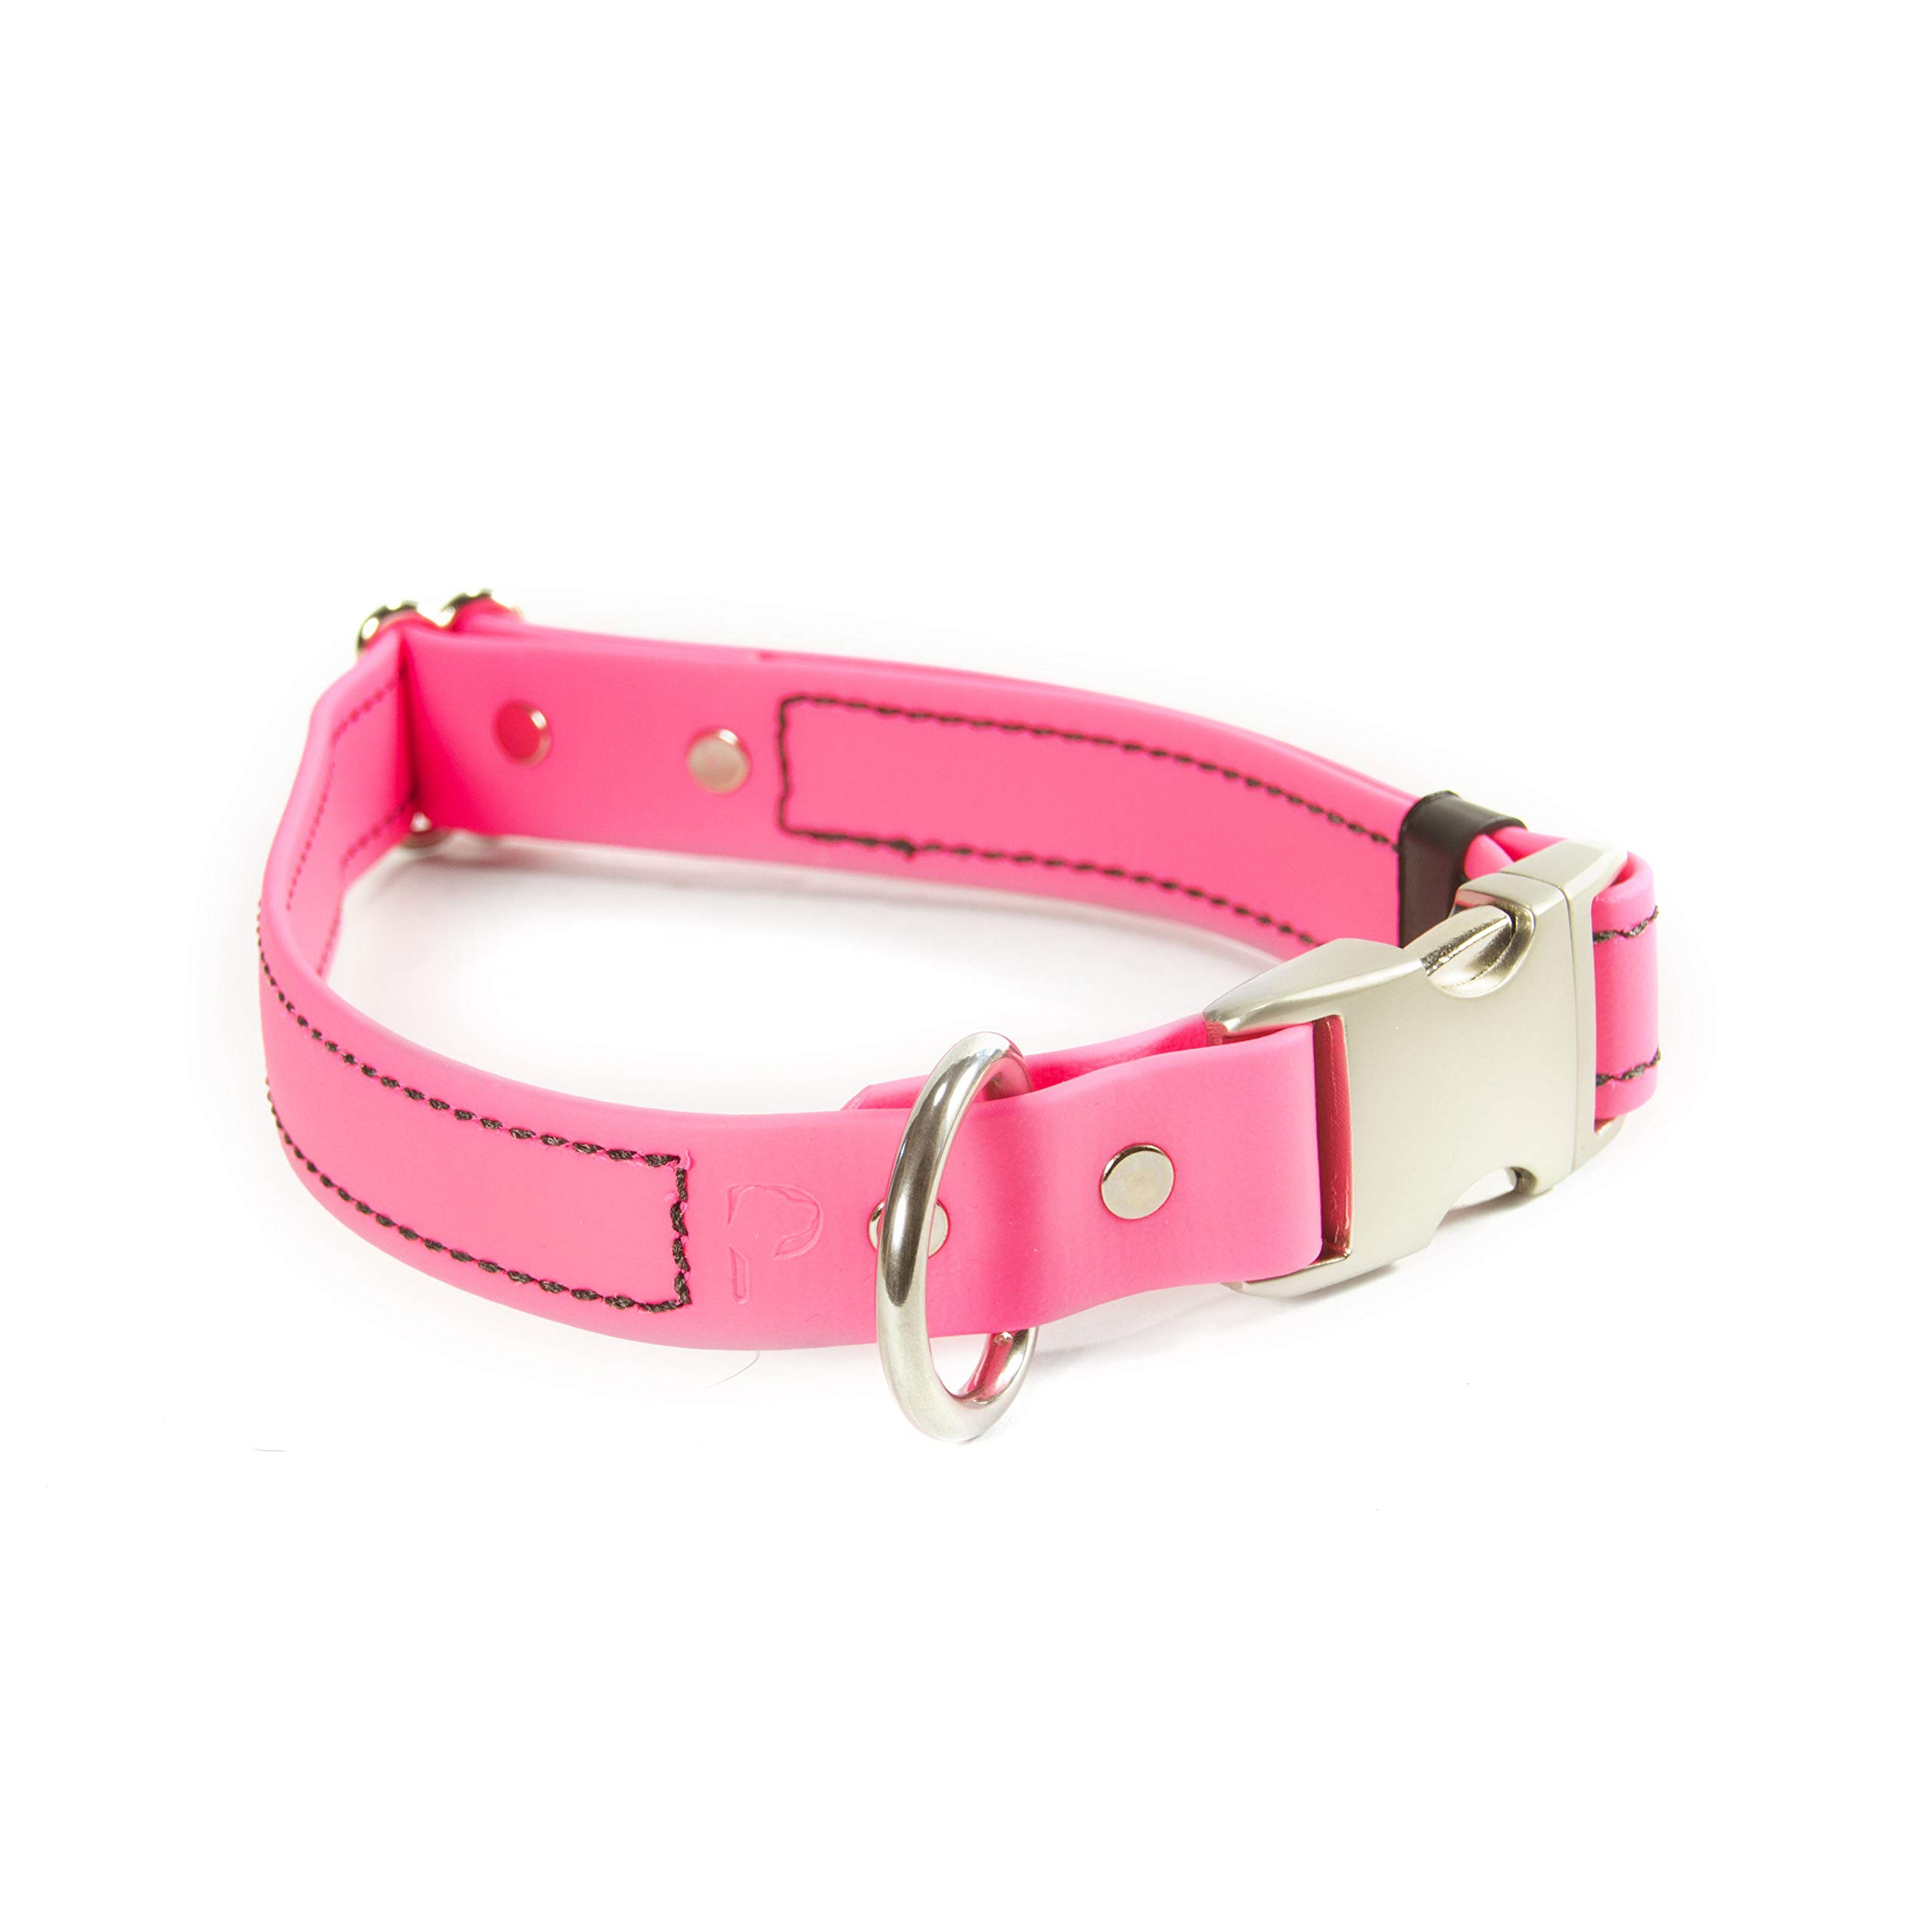 PACKT Quick Release Waterproof Stinkproof Dog Collar, Pink-M